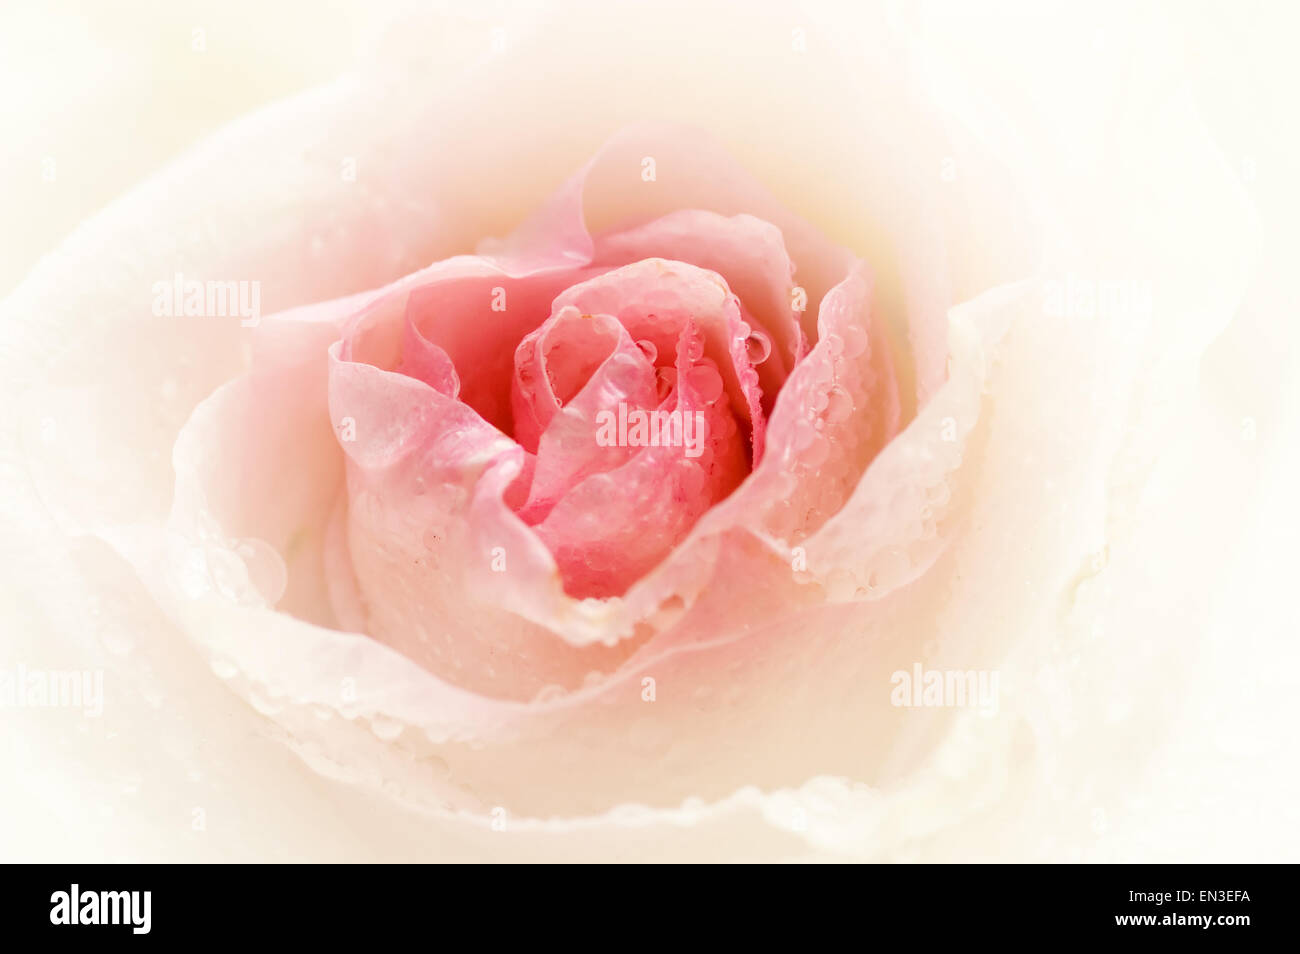 Close-up shot of a rose bud with water drops on petals Stock Photo